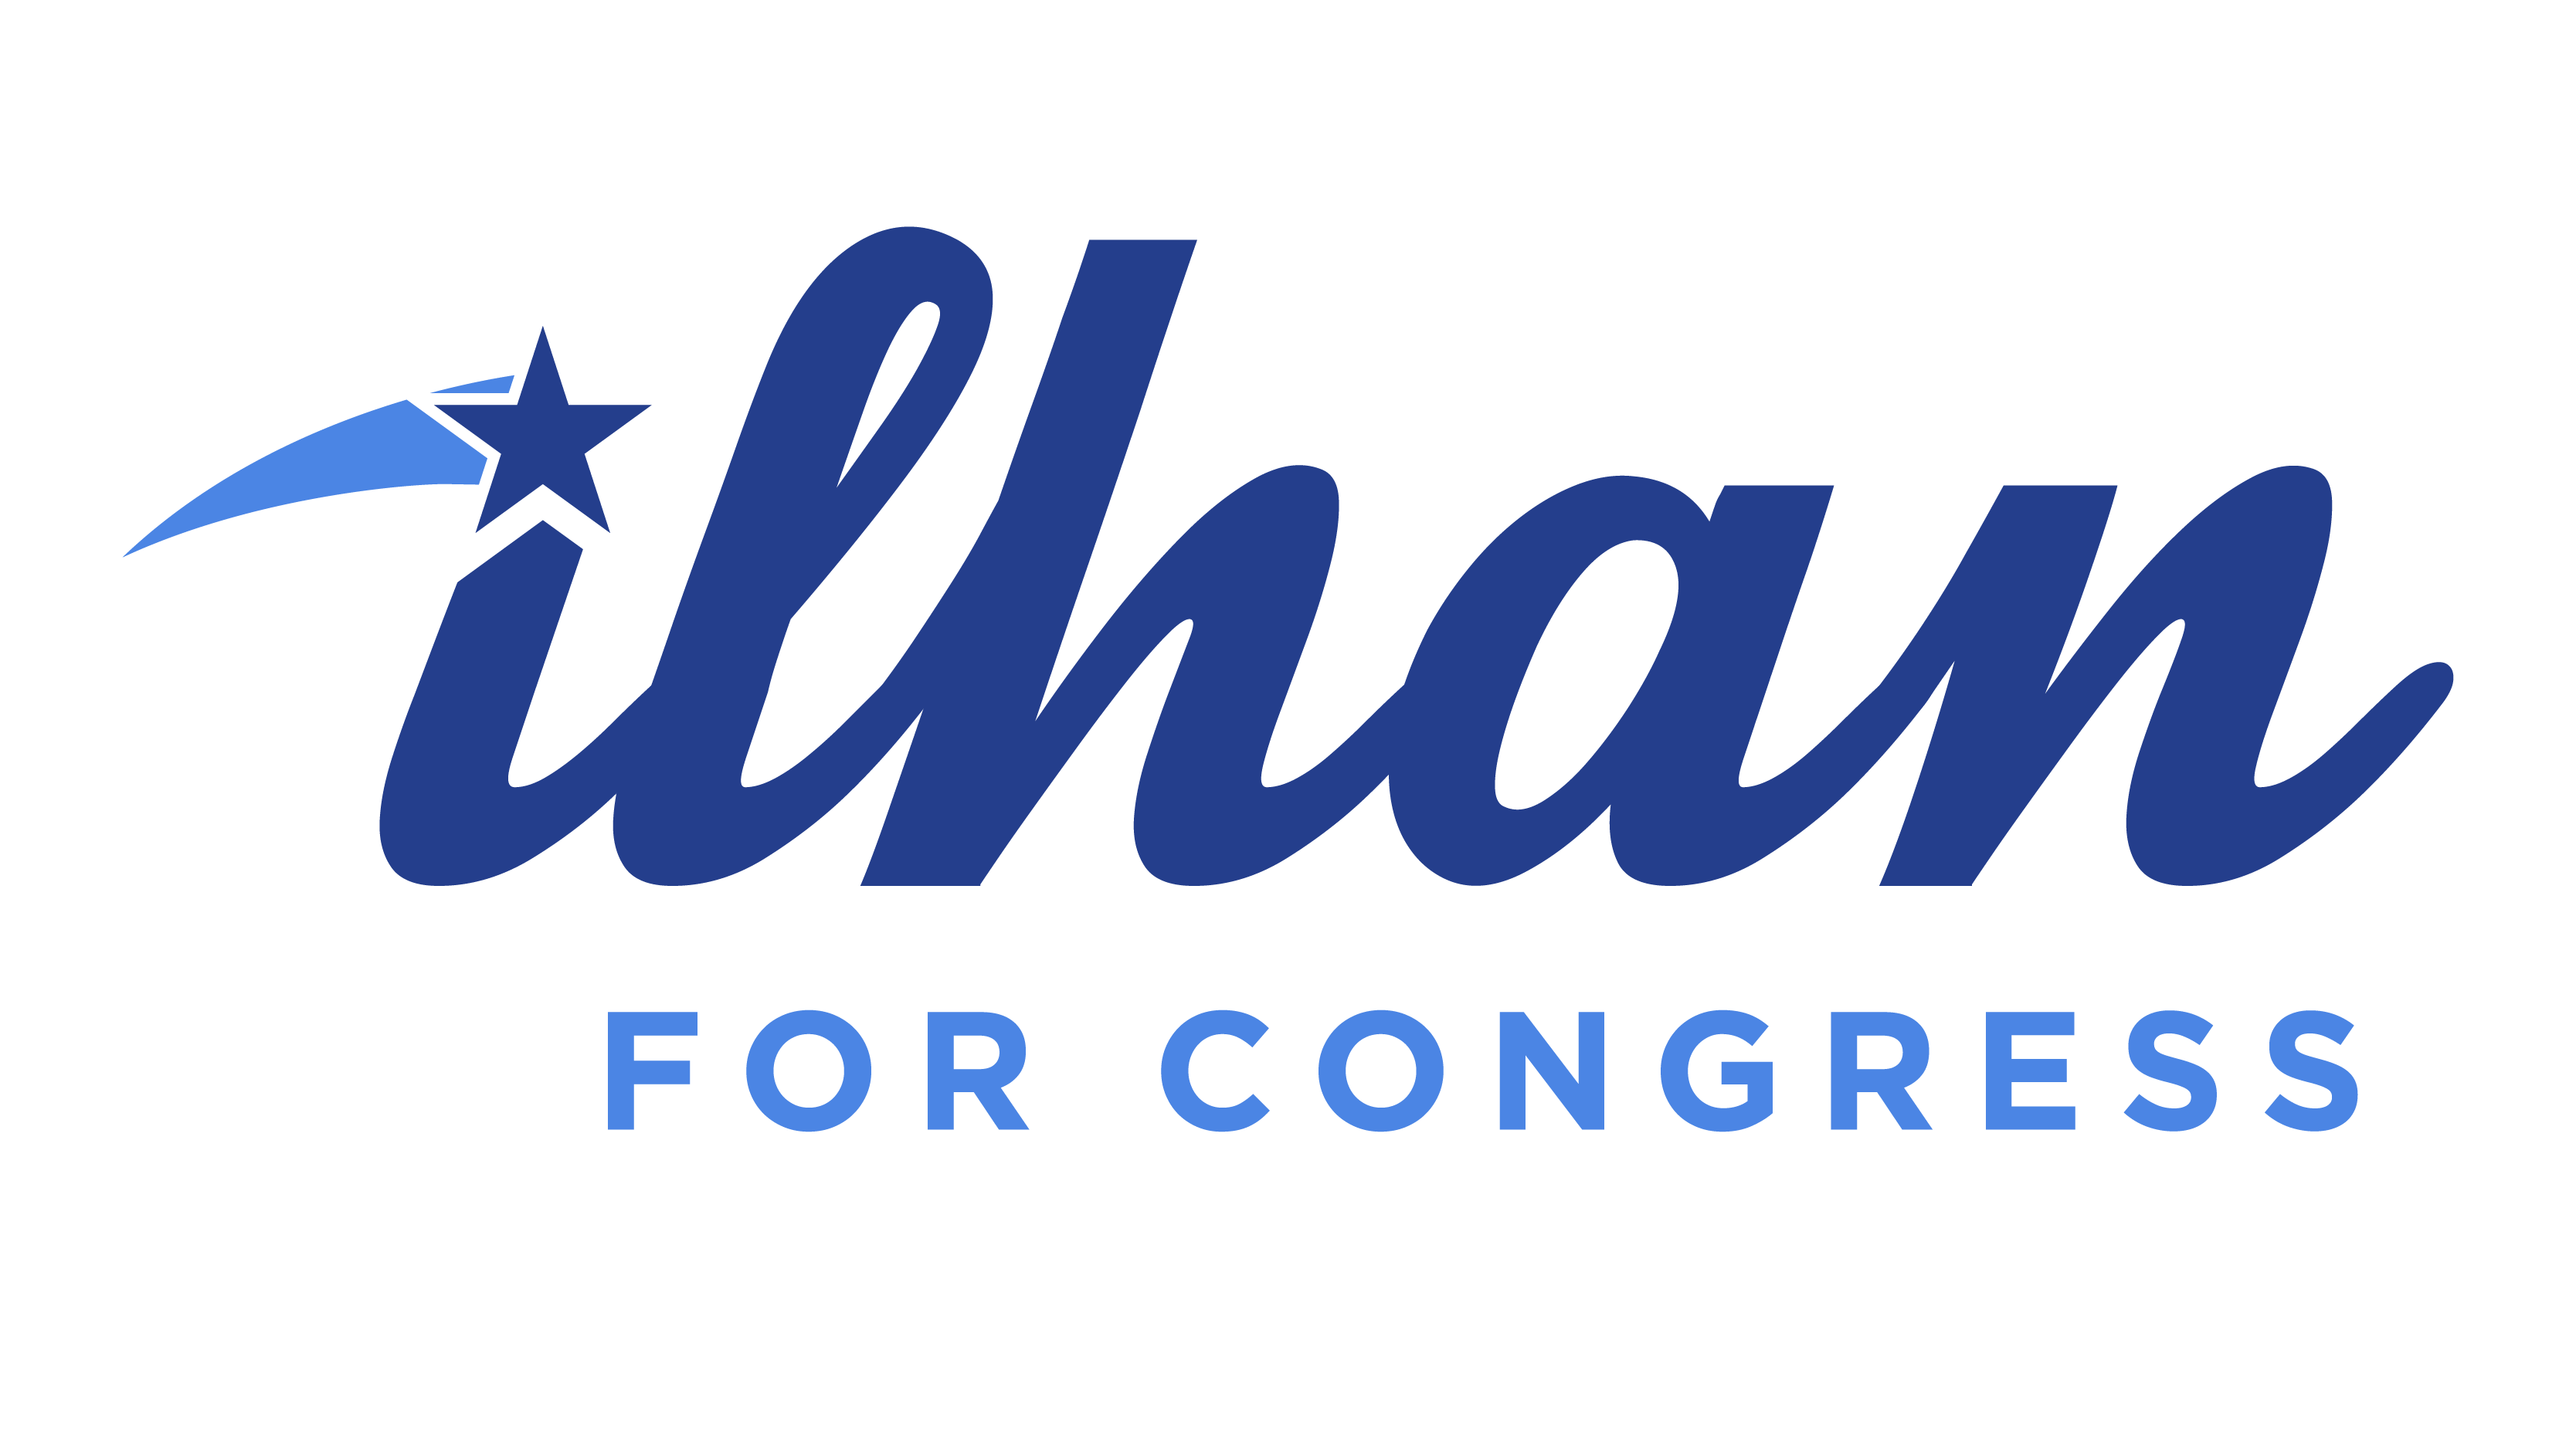 Ilhan for Congress